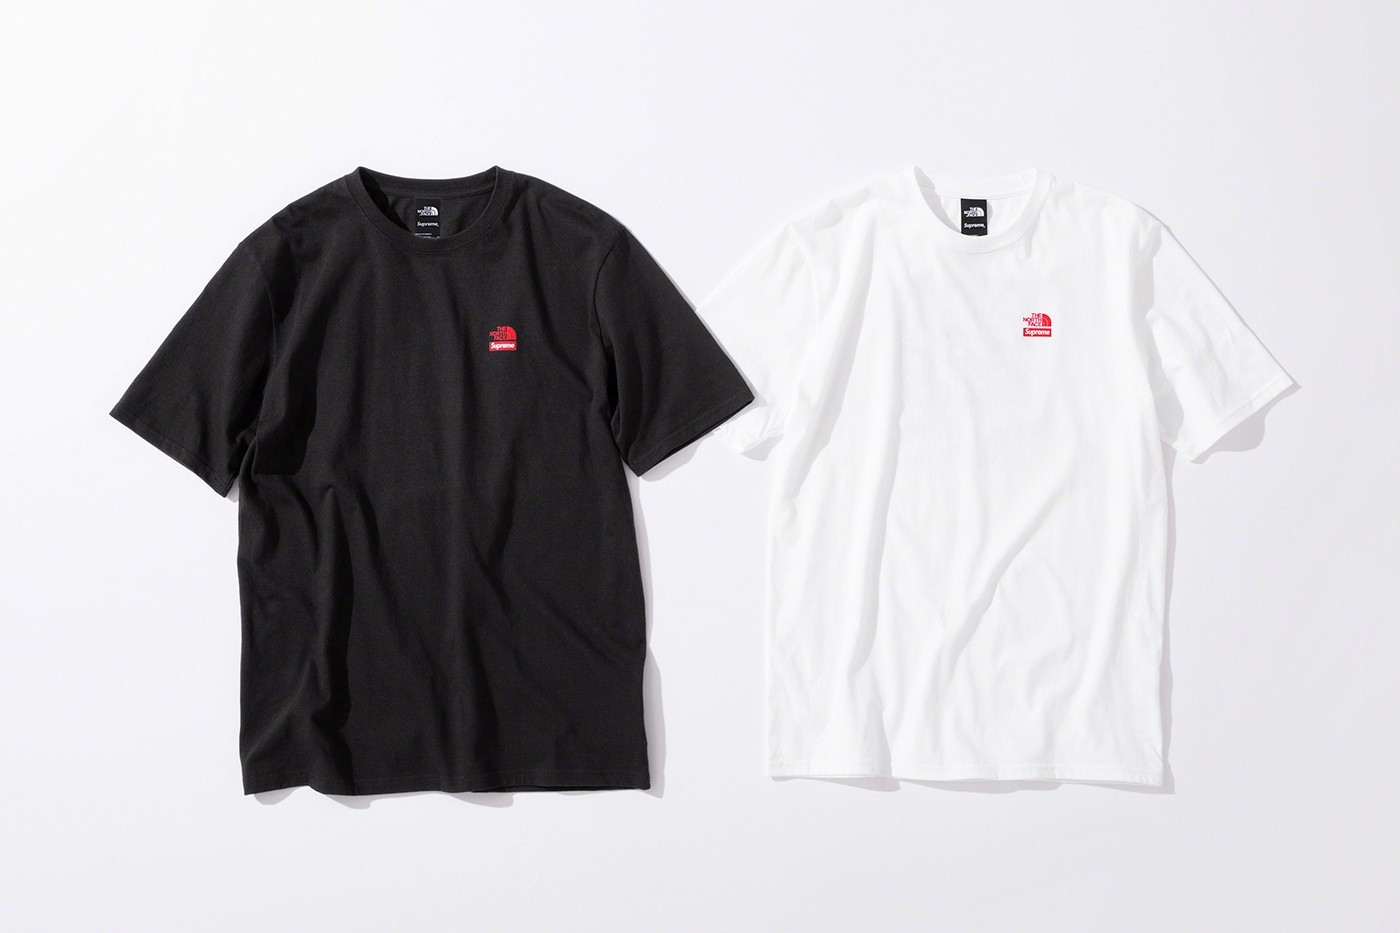 Supreme Fall Winter 2019 Week 10 Drop List 5 Palace BAIT One Punch Man Fucking Awesome Moncler Grenoble Genius Primitive Skateboarding Naruto Shippuden PLEASURES joy Division BAPE